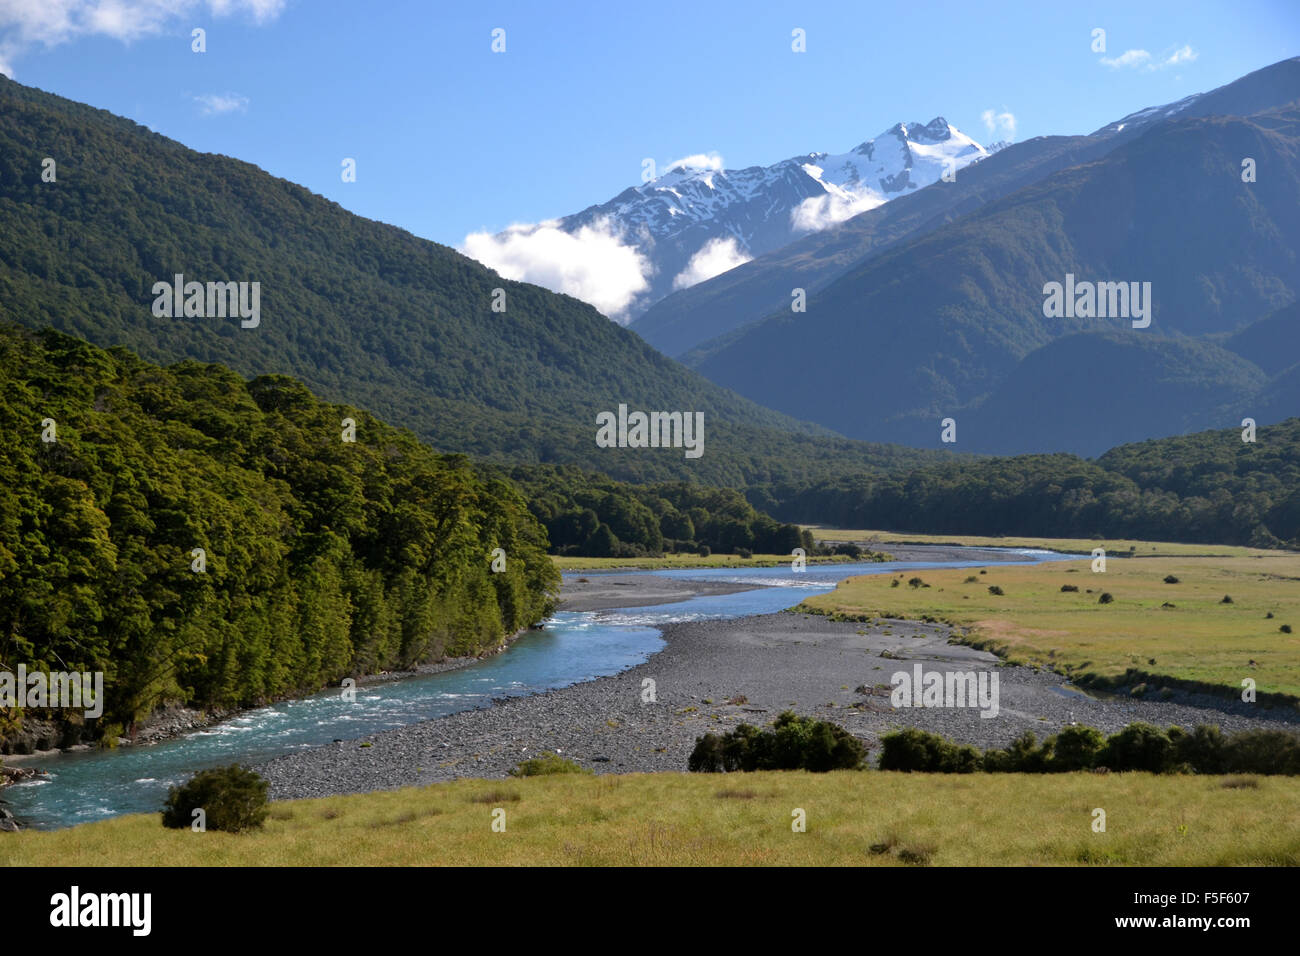 A river crosses the landscape in the South Island, New Zealand - Stock Image